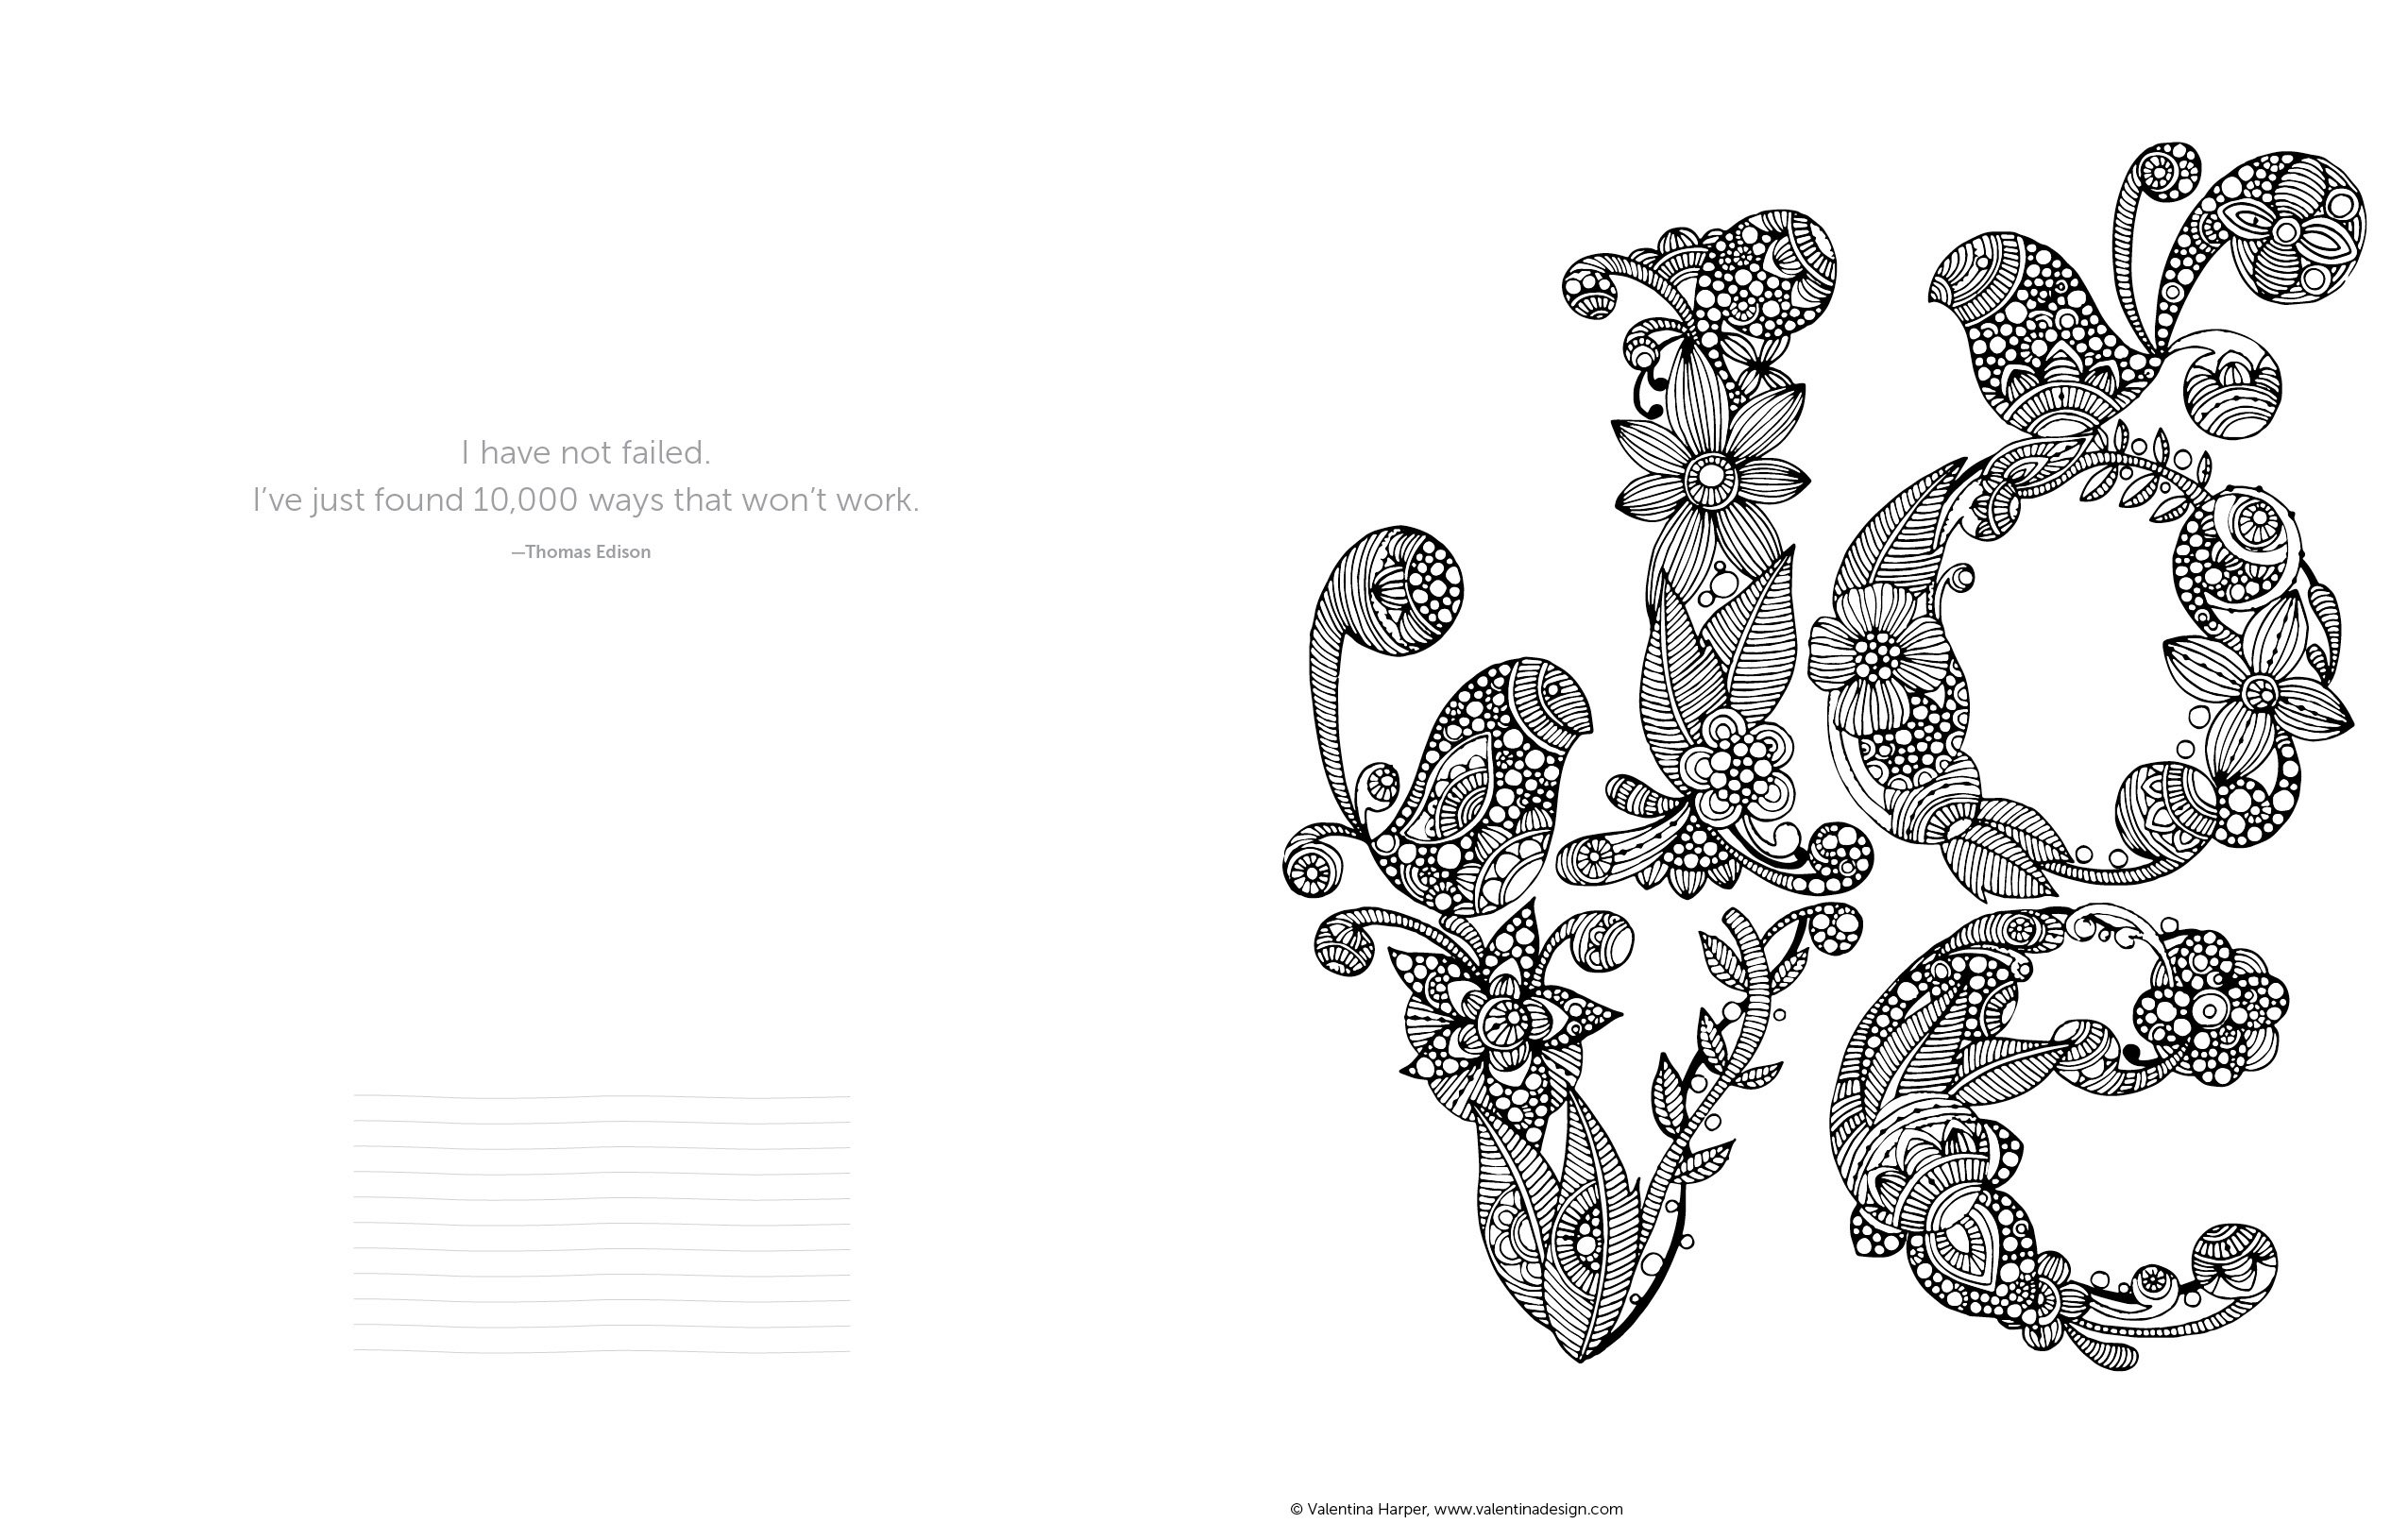 Creative Coloring Inspirations Art Activity Pages To Relax And Enjoy Design Originals 30